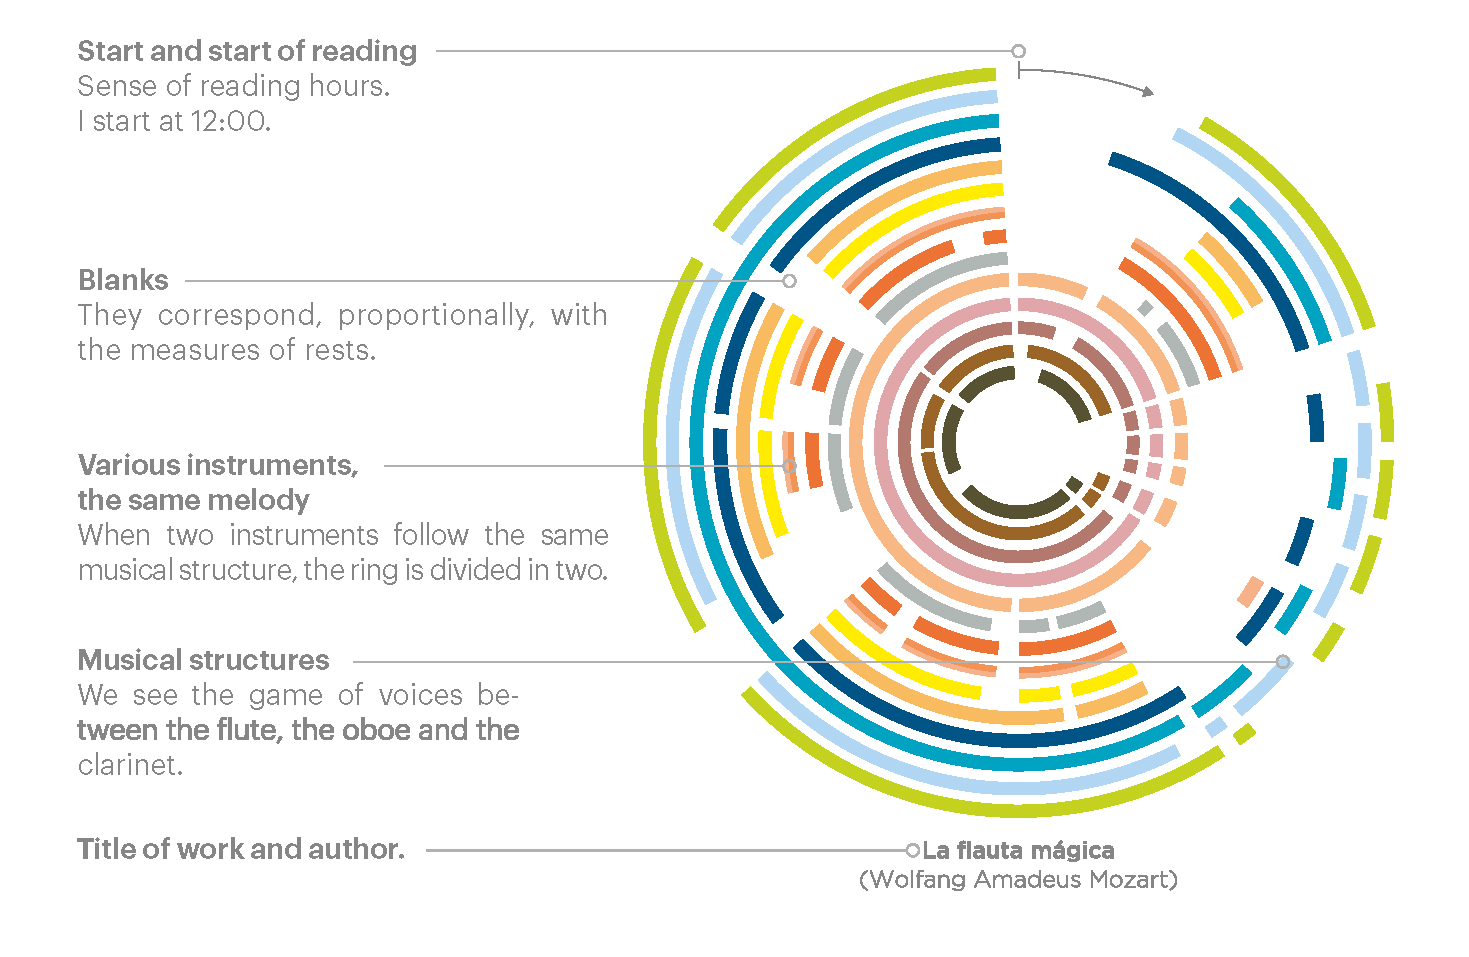 Data visualizations about music, how to read circular graphs and compare one to each other